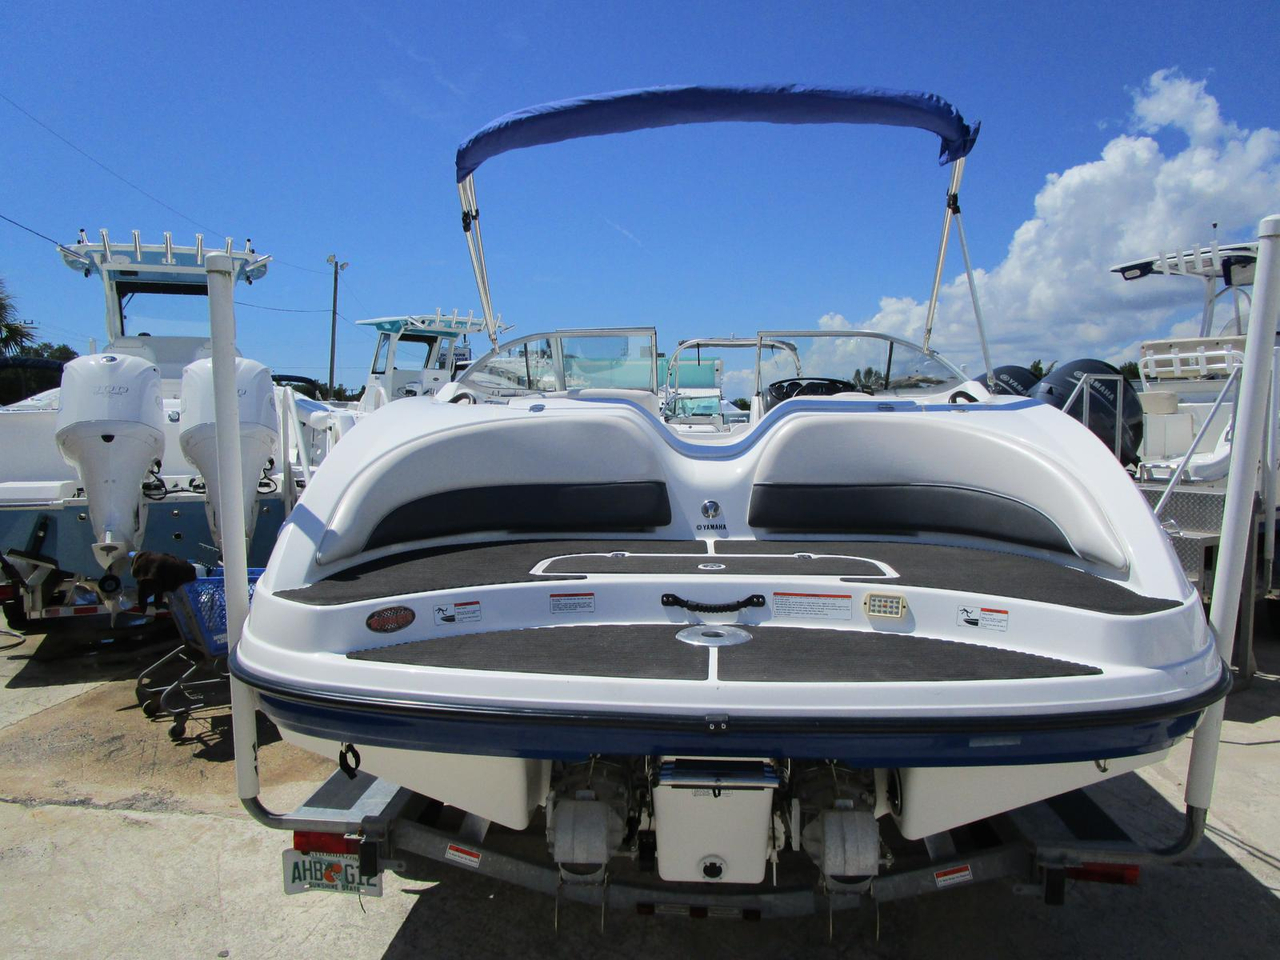 2006 used yamaha sx 210 jet boat for sale 17 495 for Yamaha jet boat for sale florida